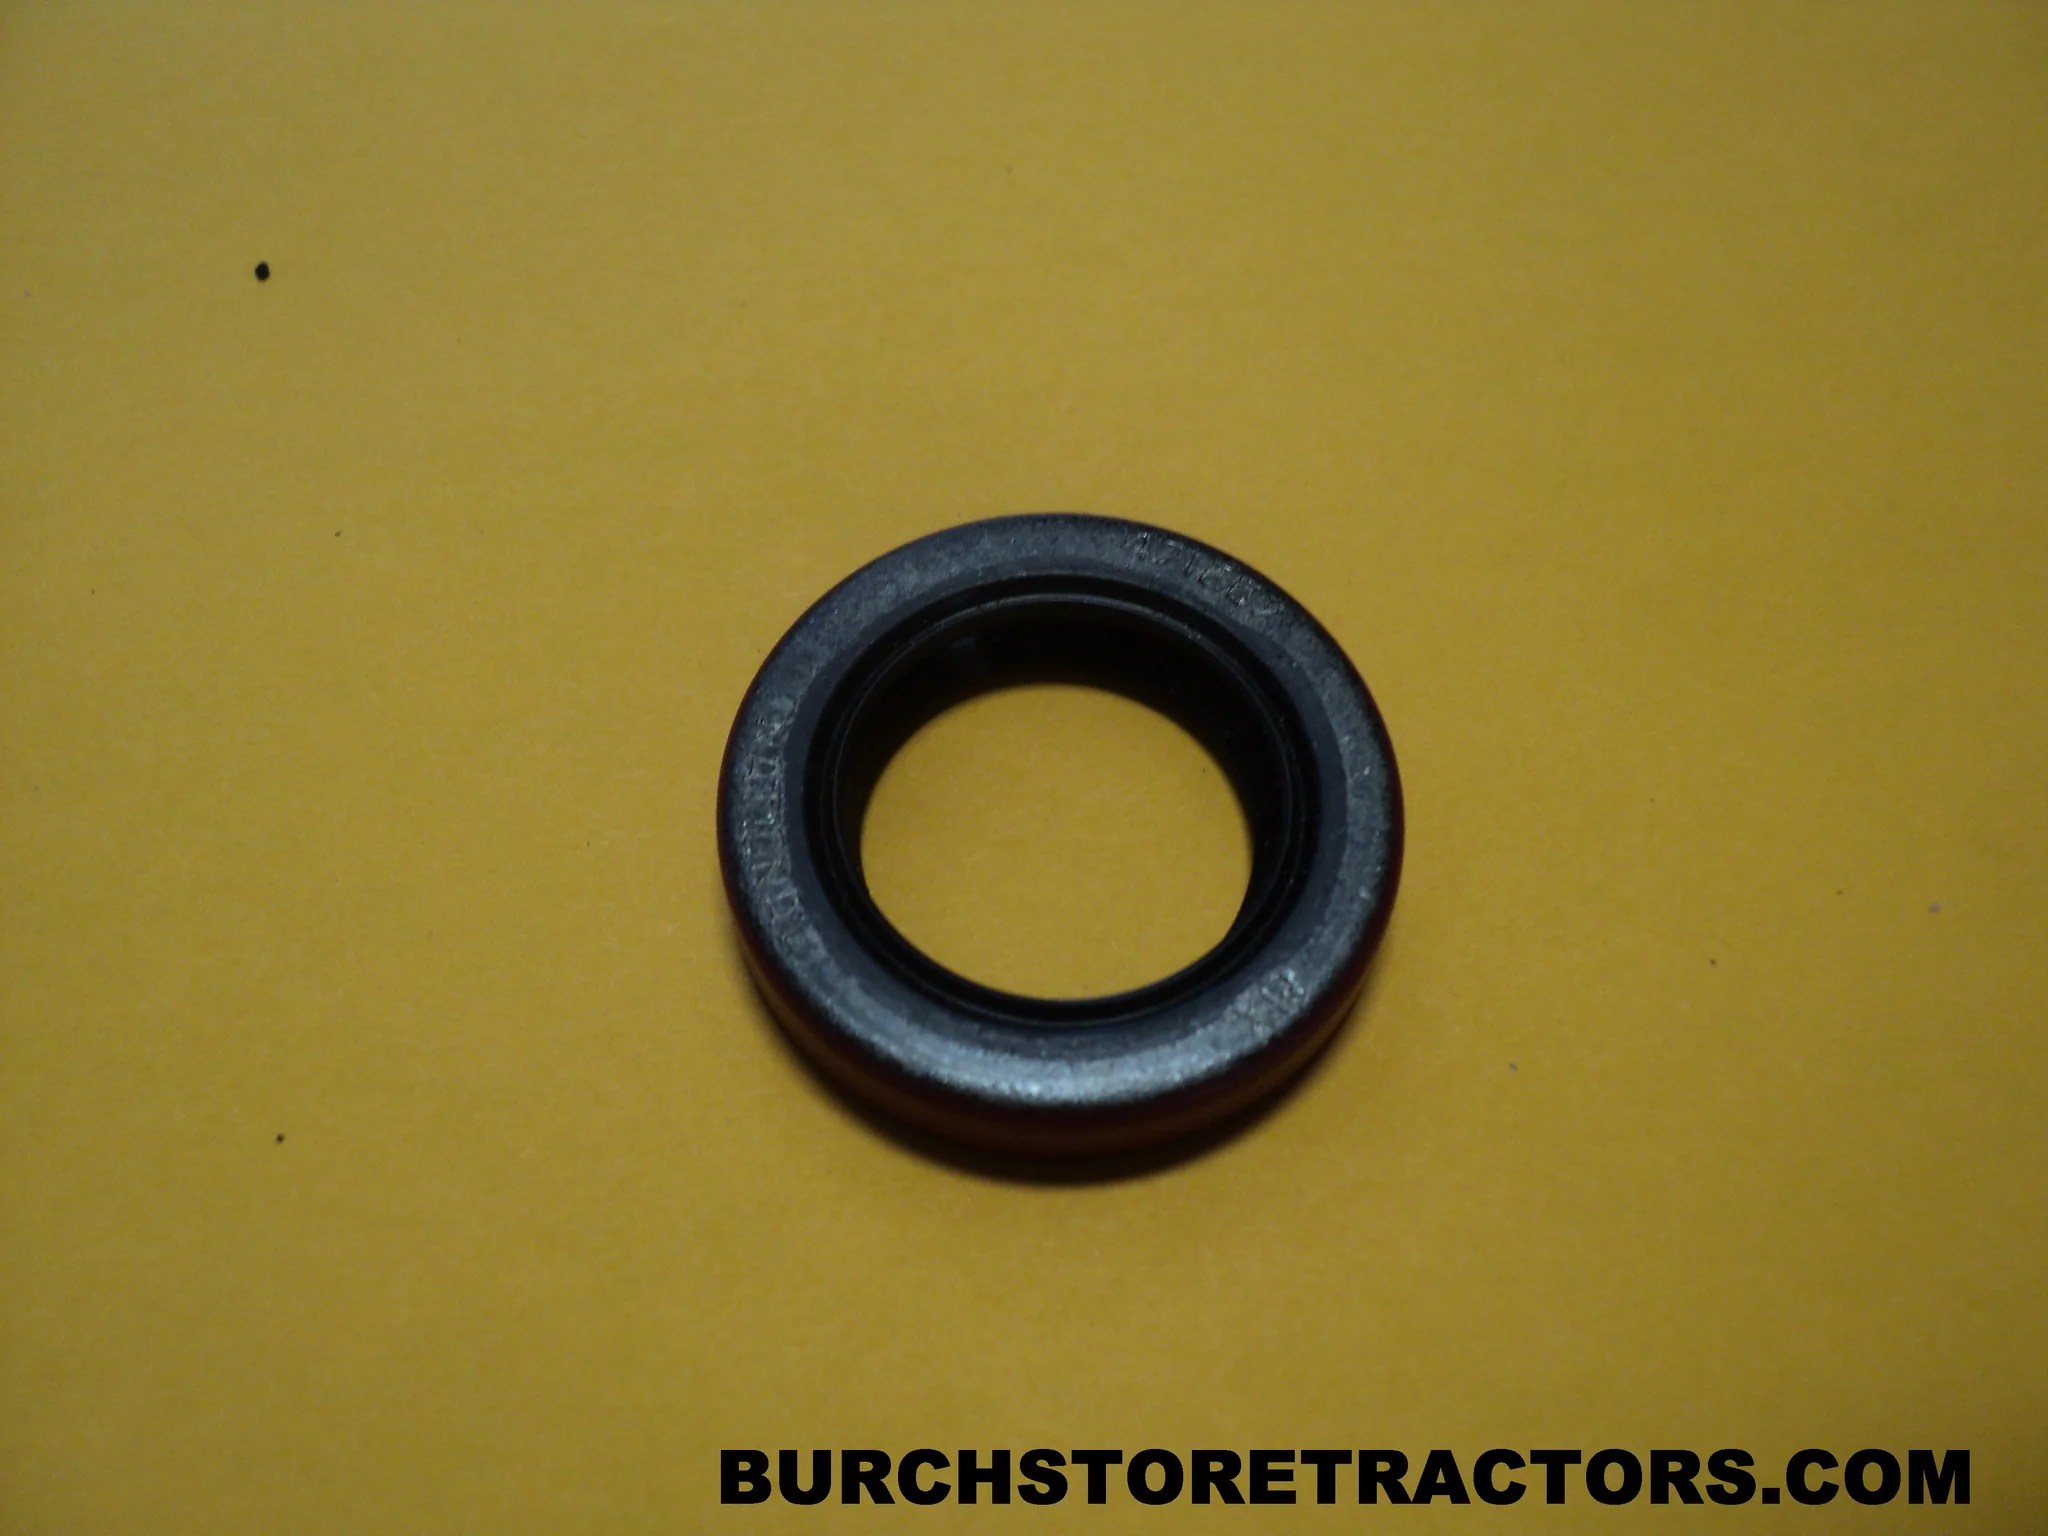 hight resolution of new top steering shaft oil seal for ih farmall cub or cub loboy tracto burch store tractors